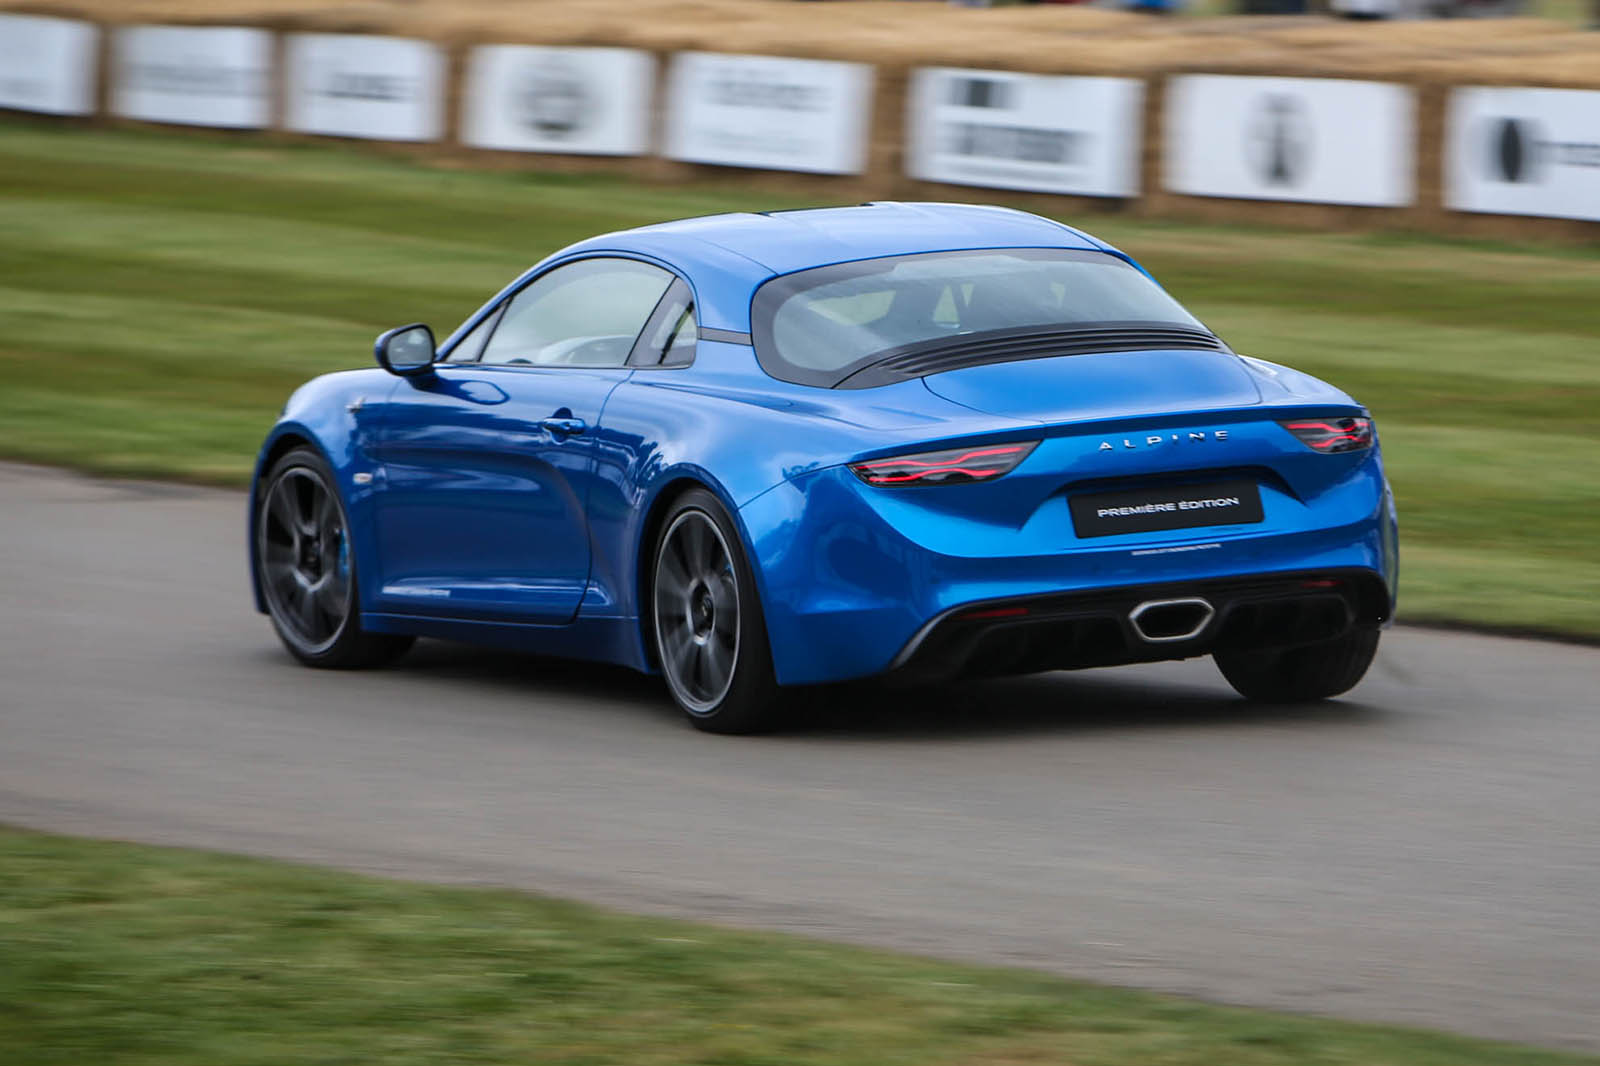 Alpine A110 Premiere Edition price confirmed as £51,805